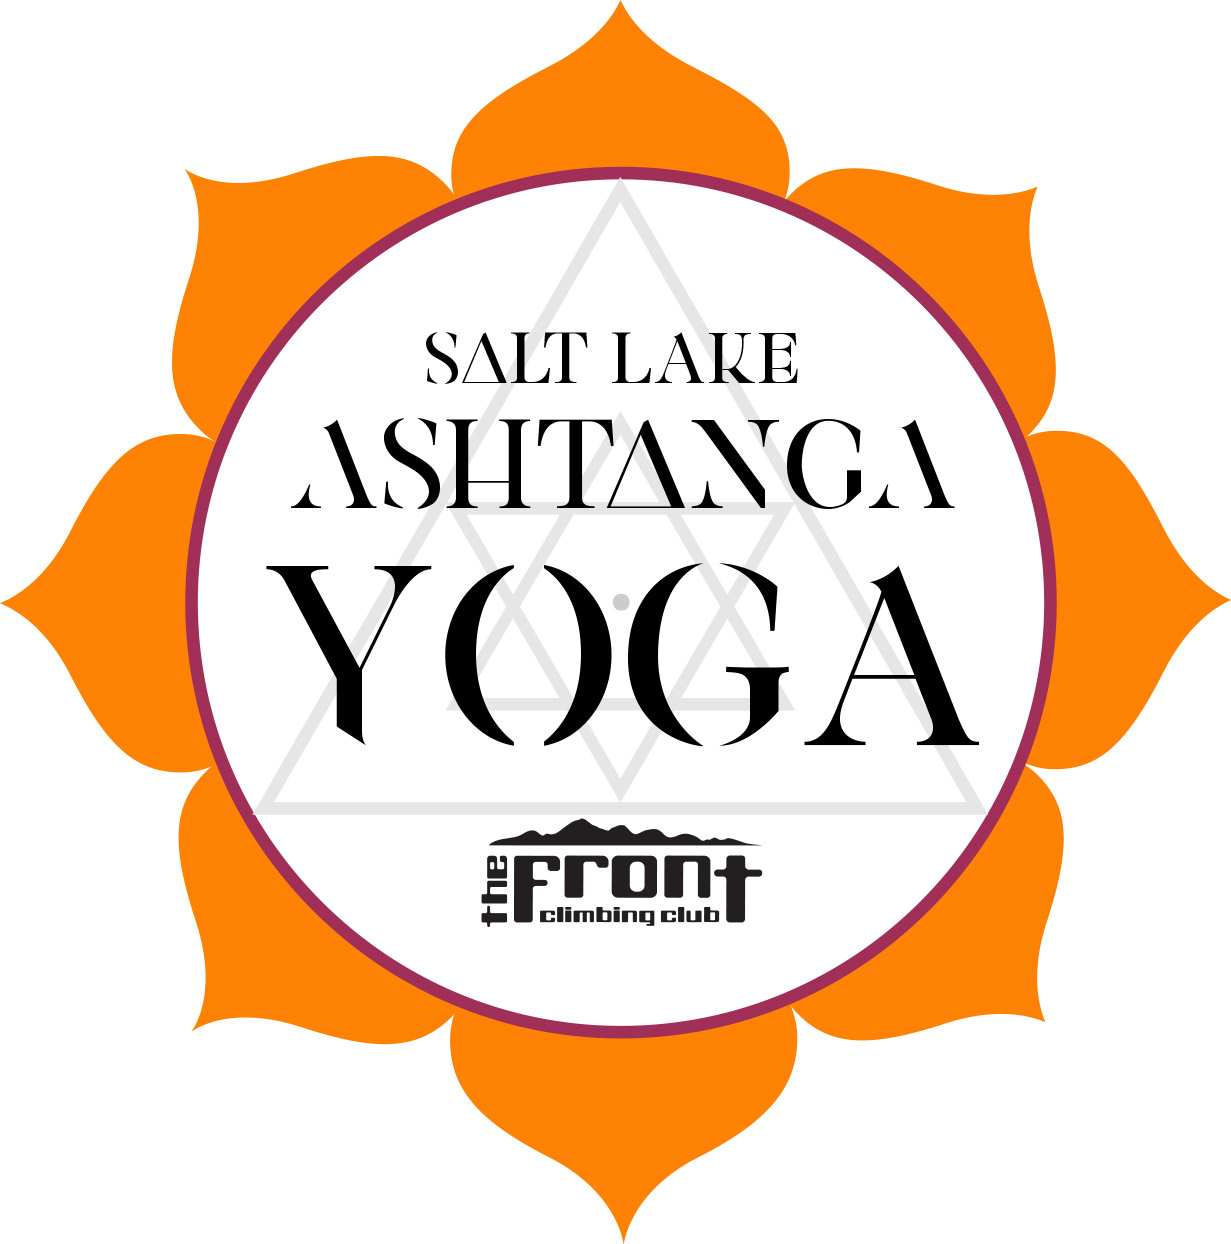 Mysore Ashtanga Yoga by Sarah Jane || Salt Lake City